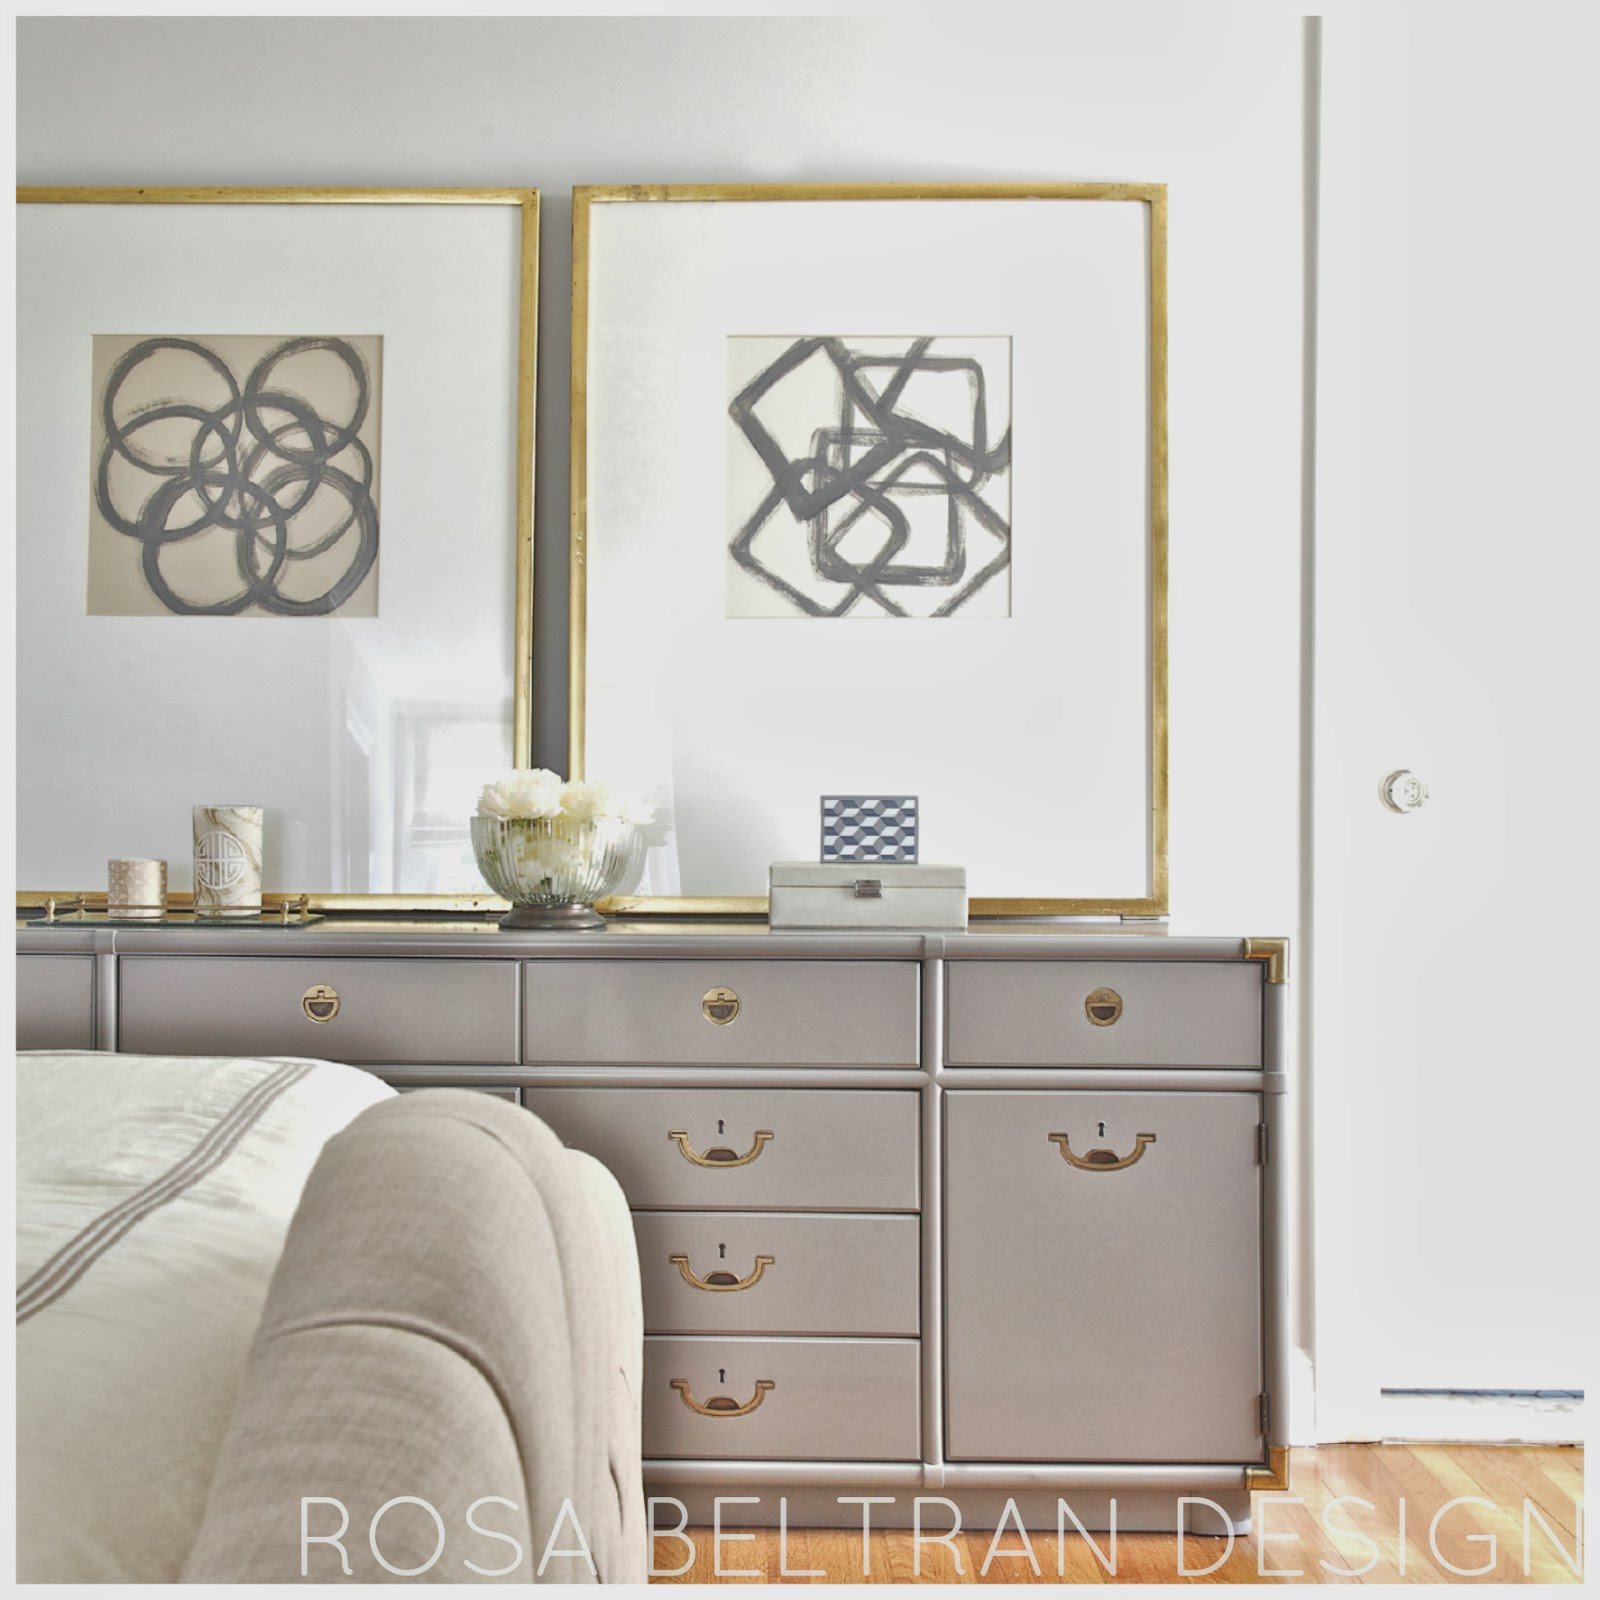 Rosa Beltran Design Diy Wall Art Series Modern Abstracts